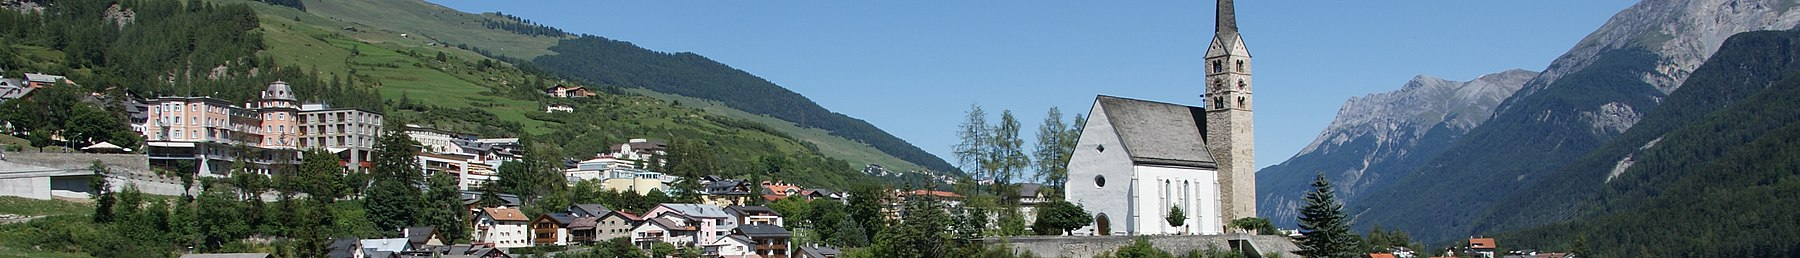 Scuol 09 (cropped for Wikivoyage).jpg